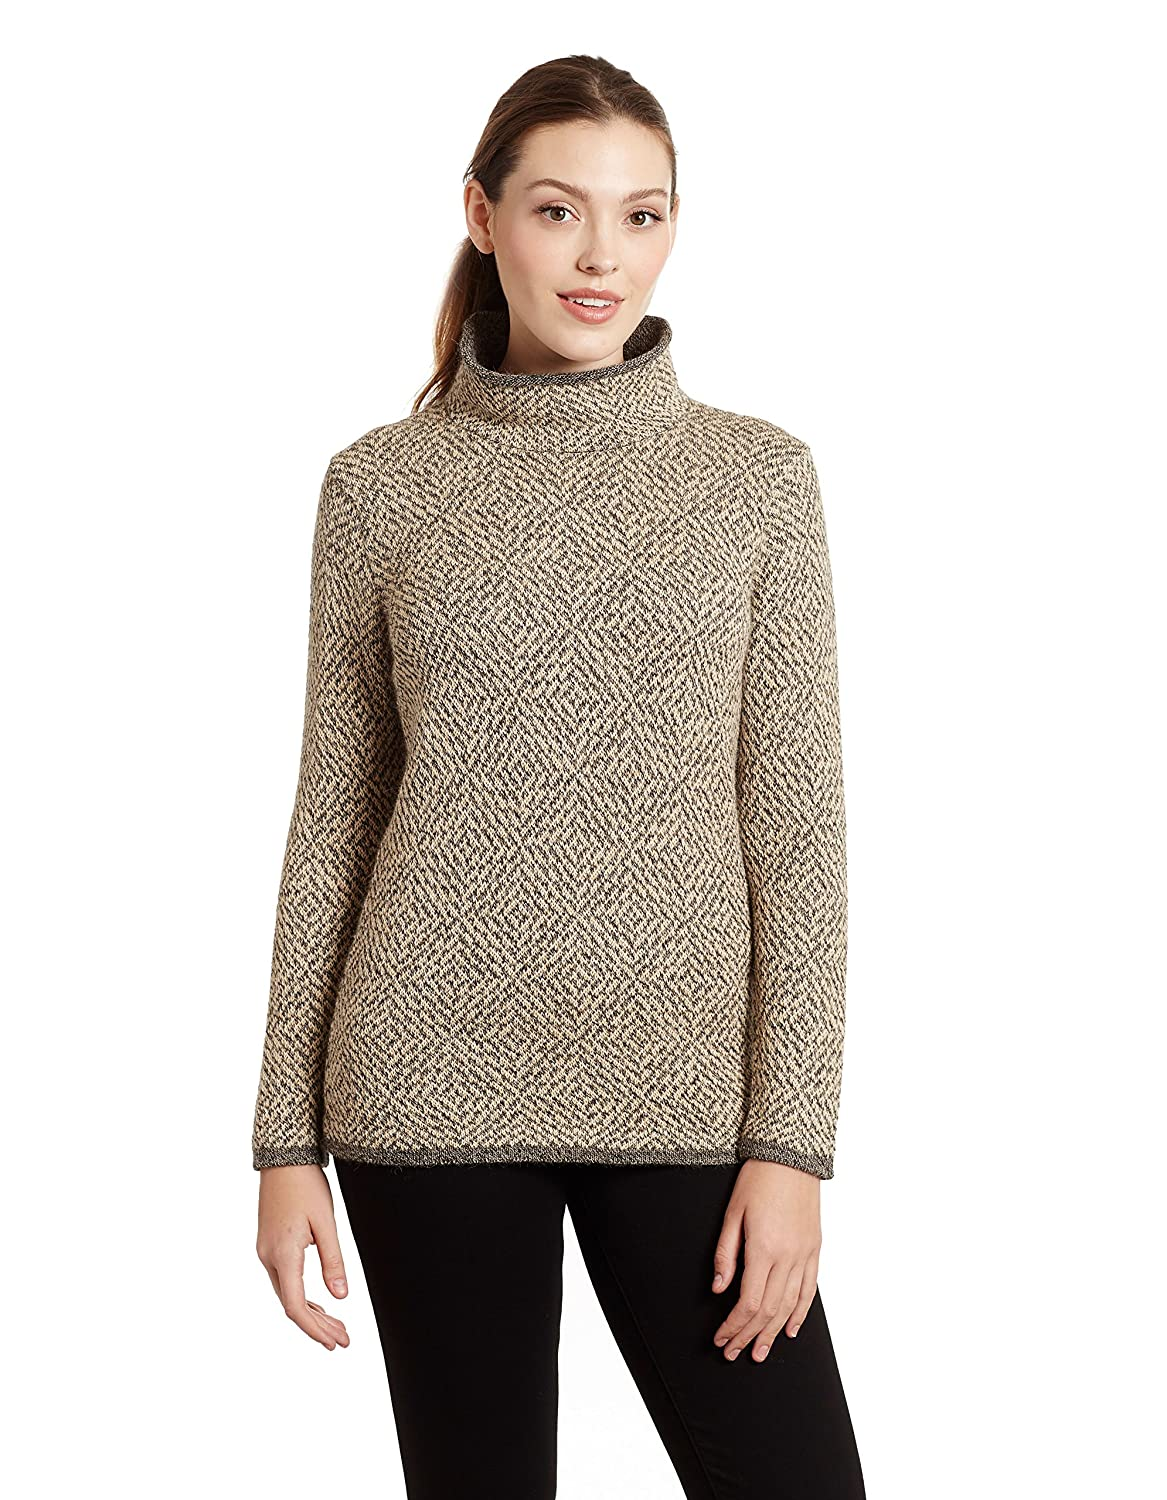 45c96d7844d3 Top 10 wholesale Camel Turtleneck Sweater - Chinabrands.com